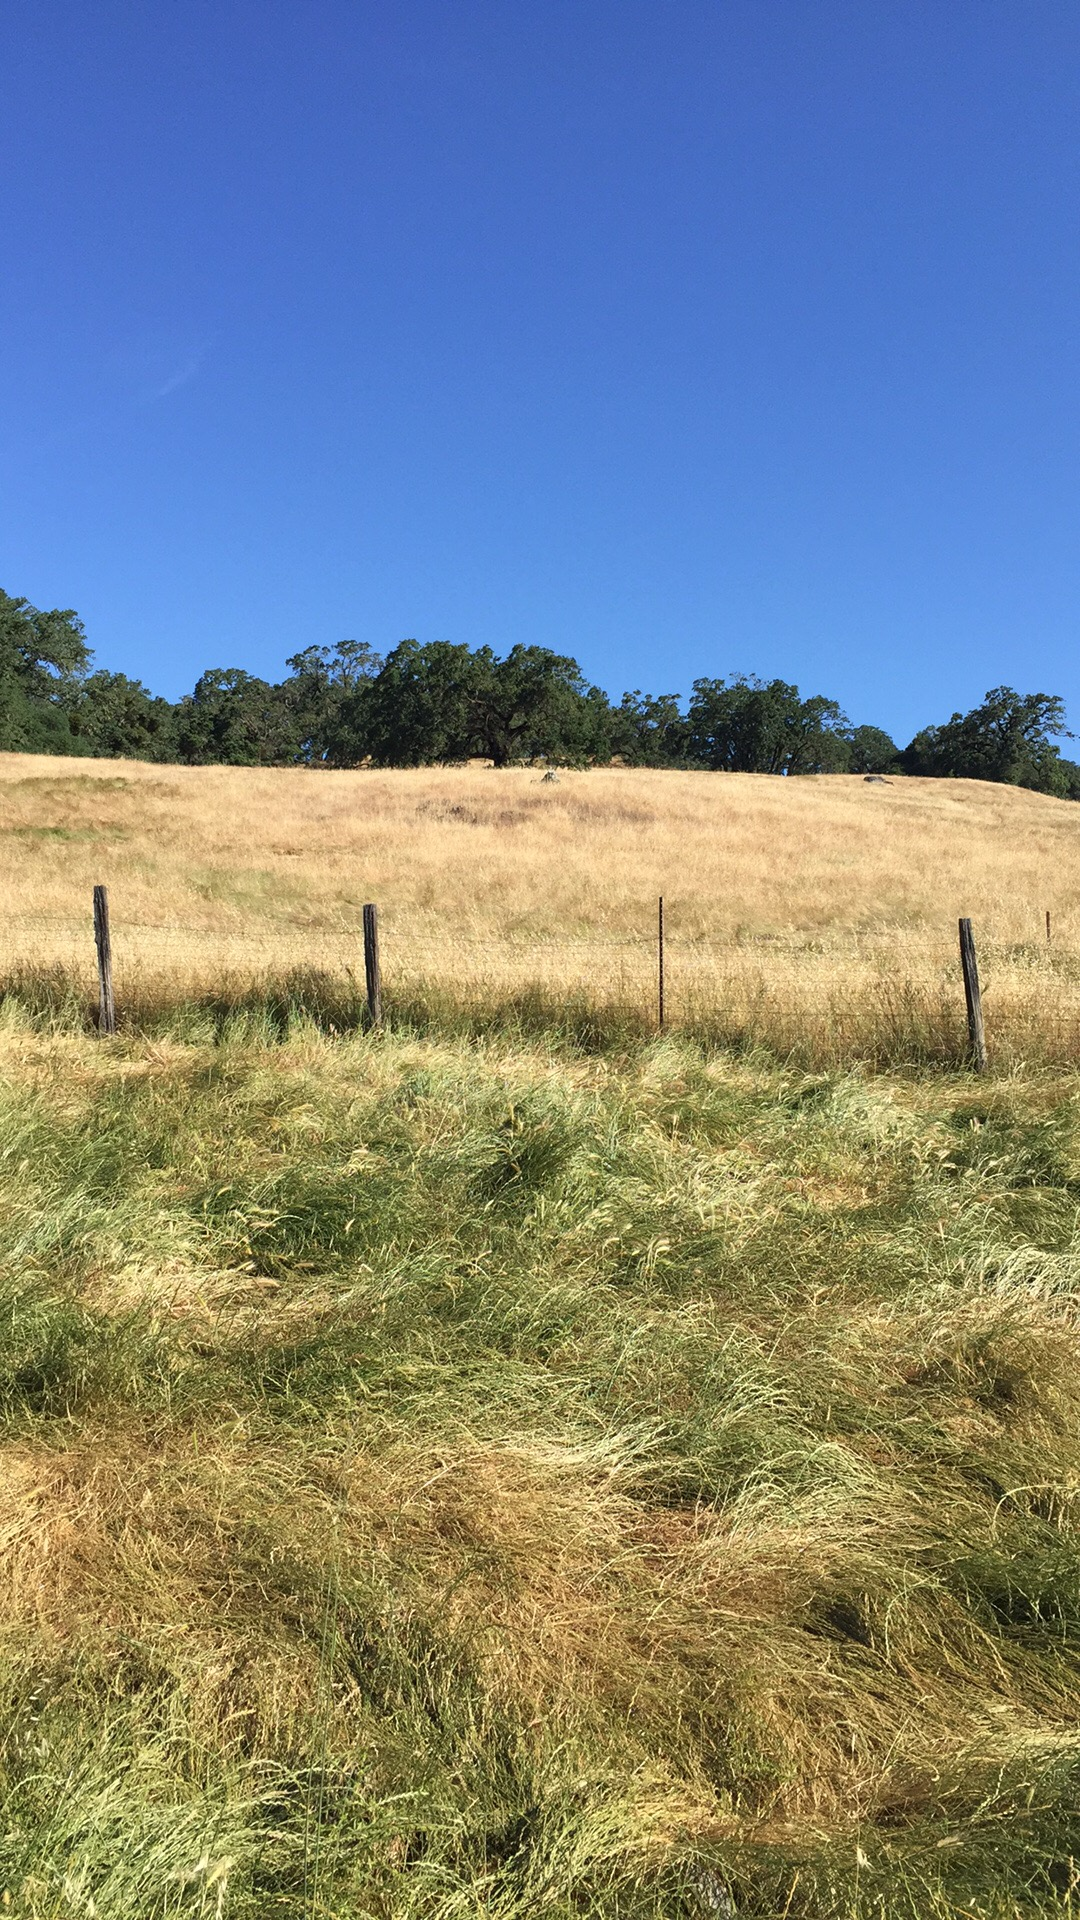 Grazed versus ungrazed pasture